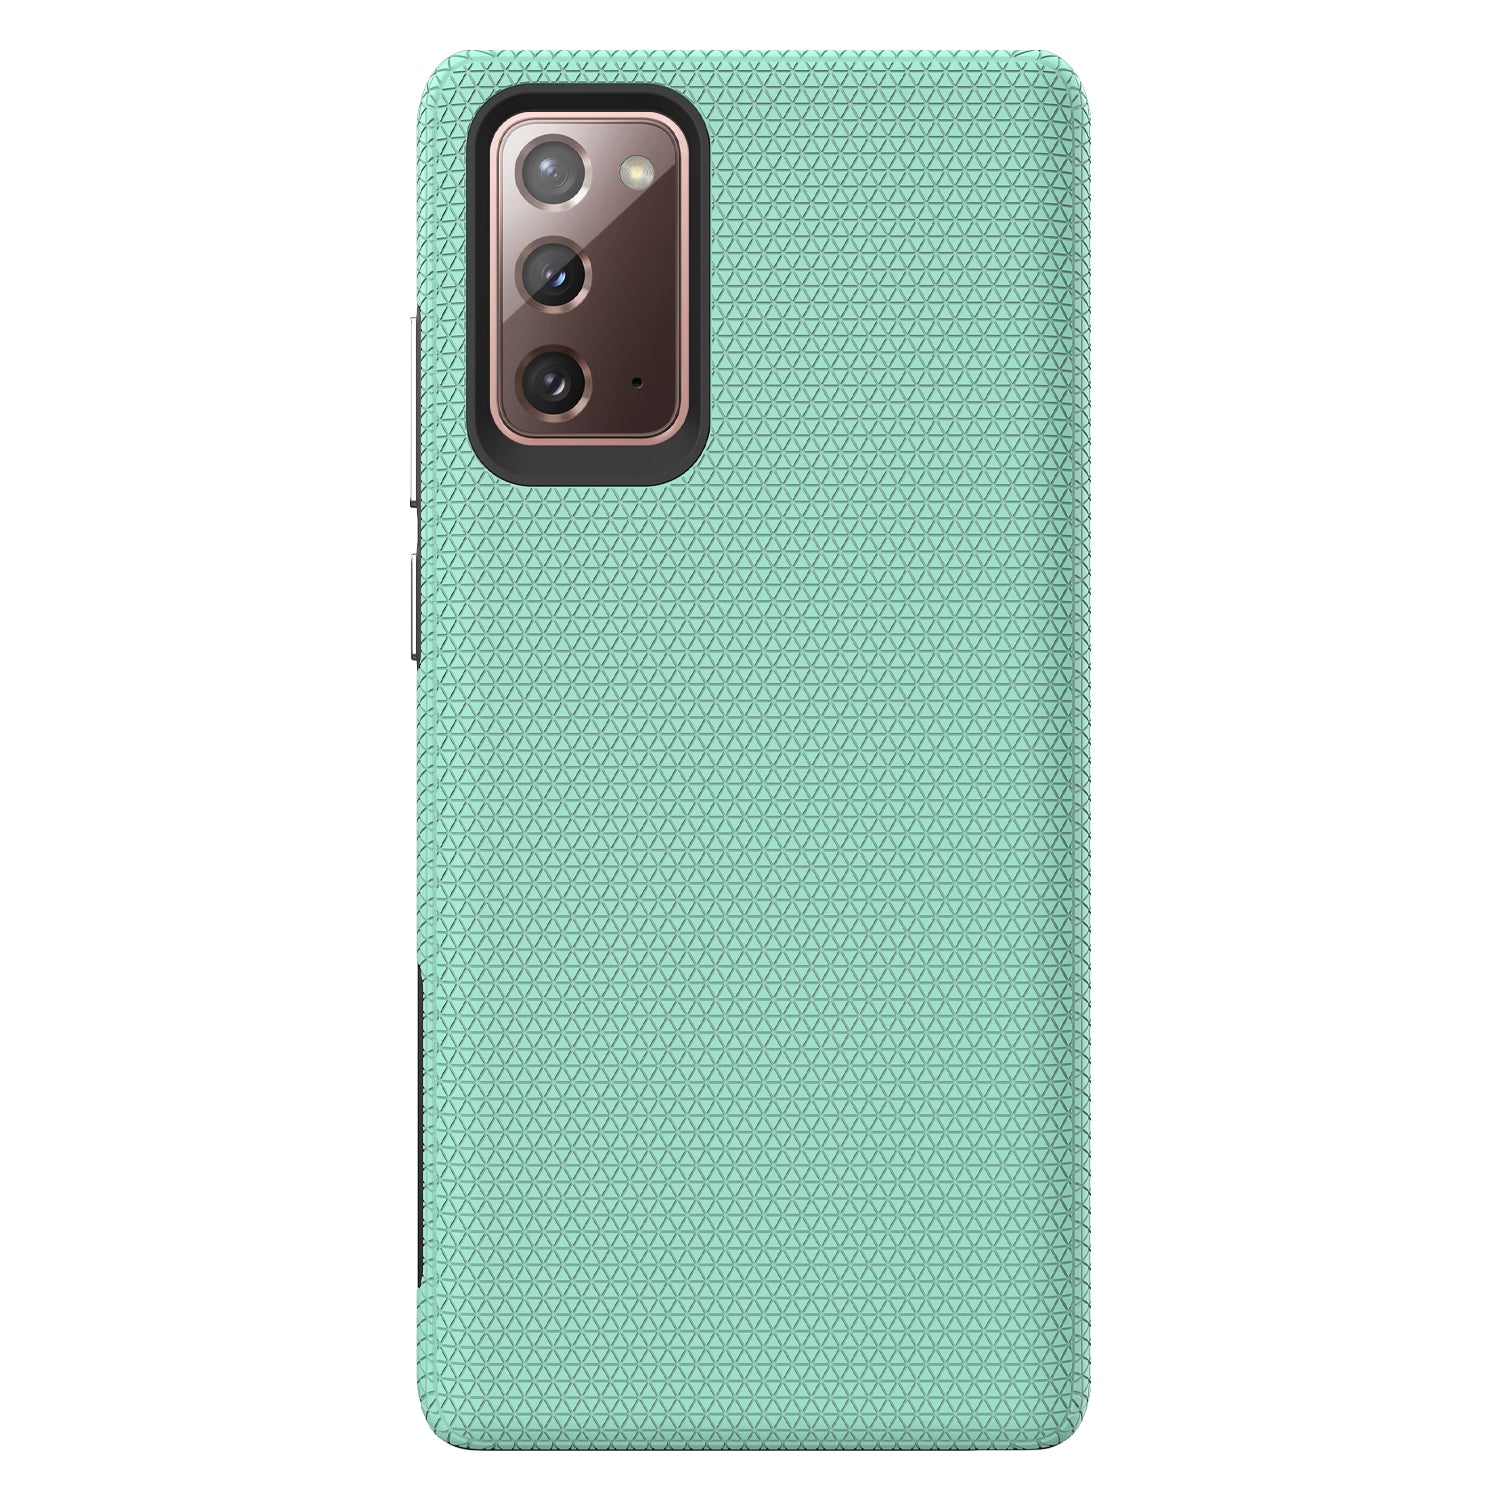 ZEOS Sphinx Dual Layer Case for Samsung Galaxy Note 20